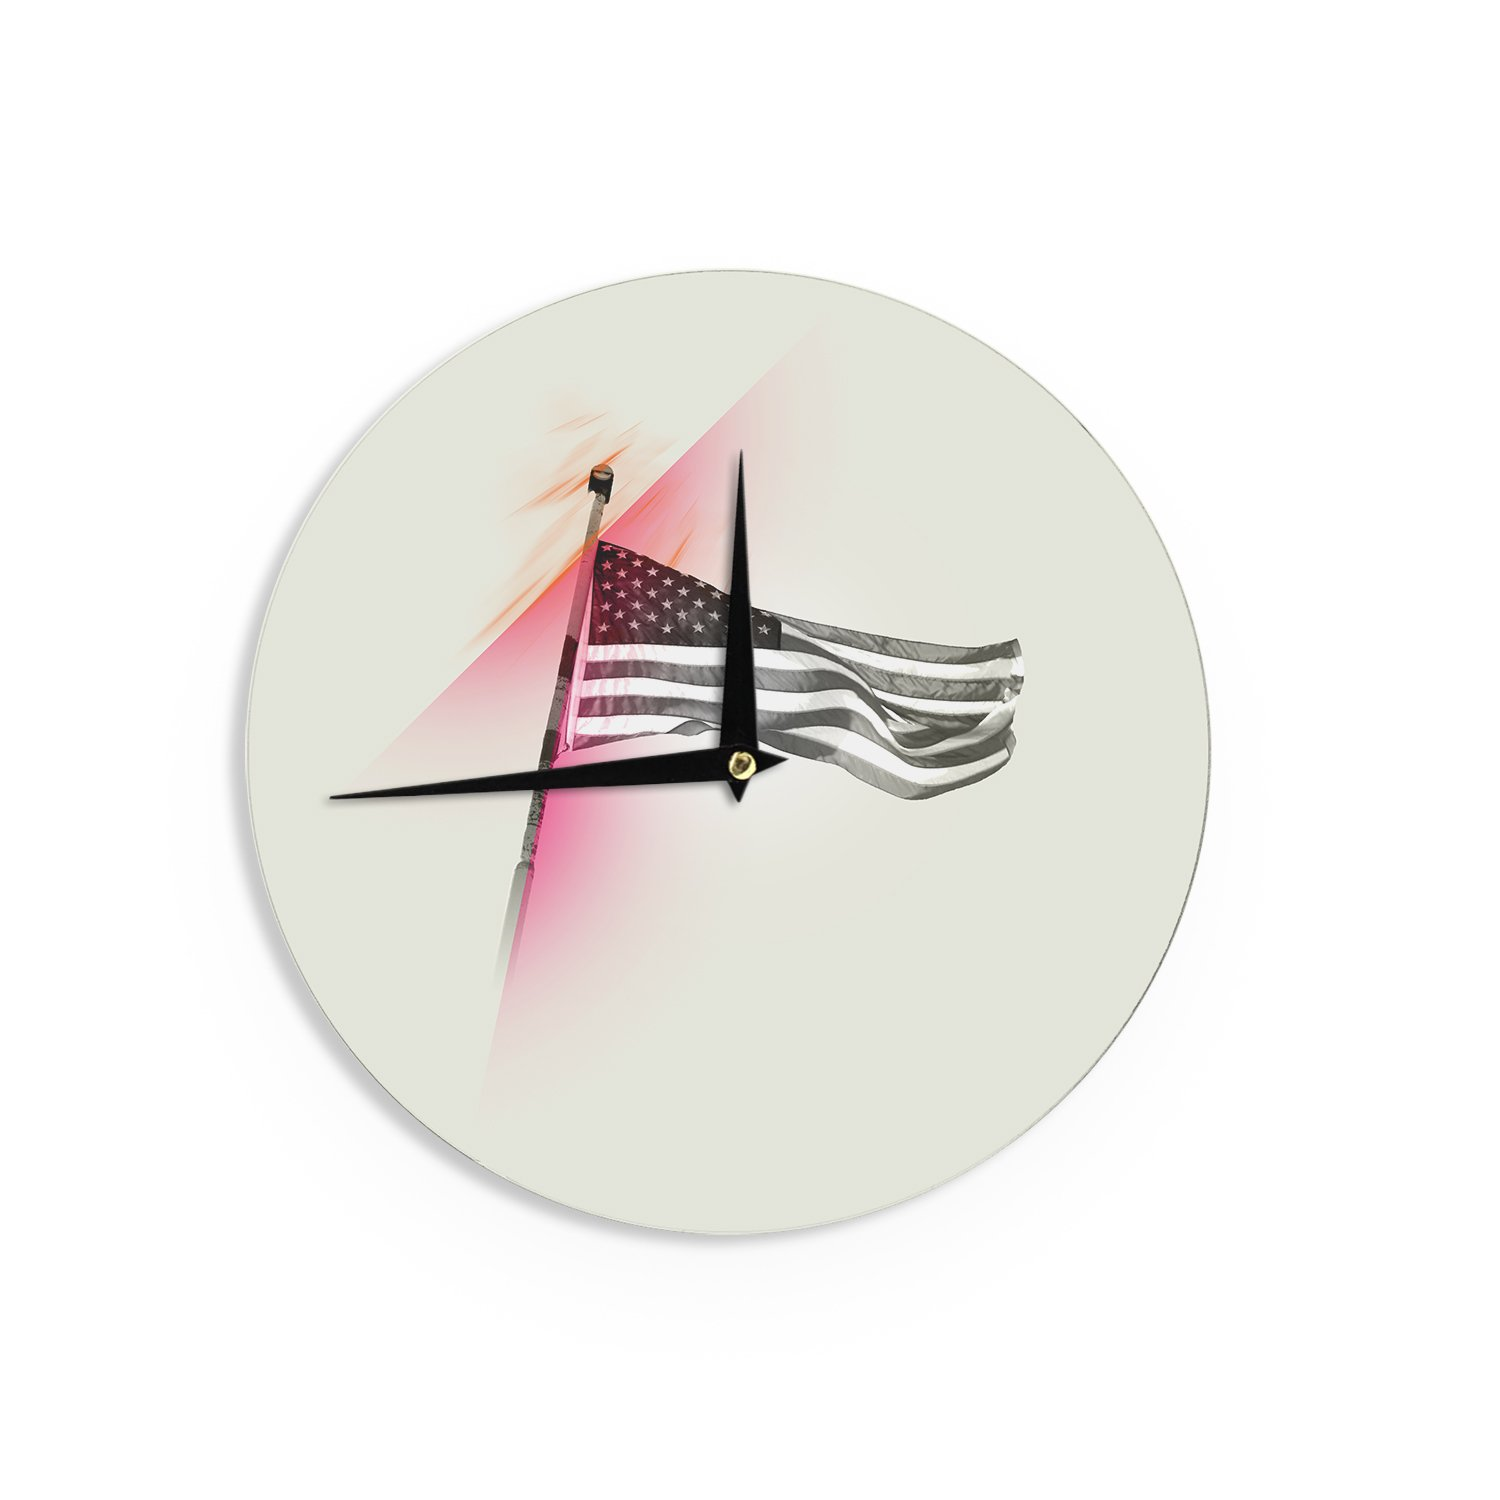 12 Kess InHouse Just L Capture The Flag Red Abstract Wall Clock